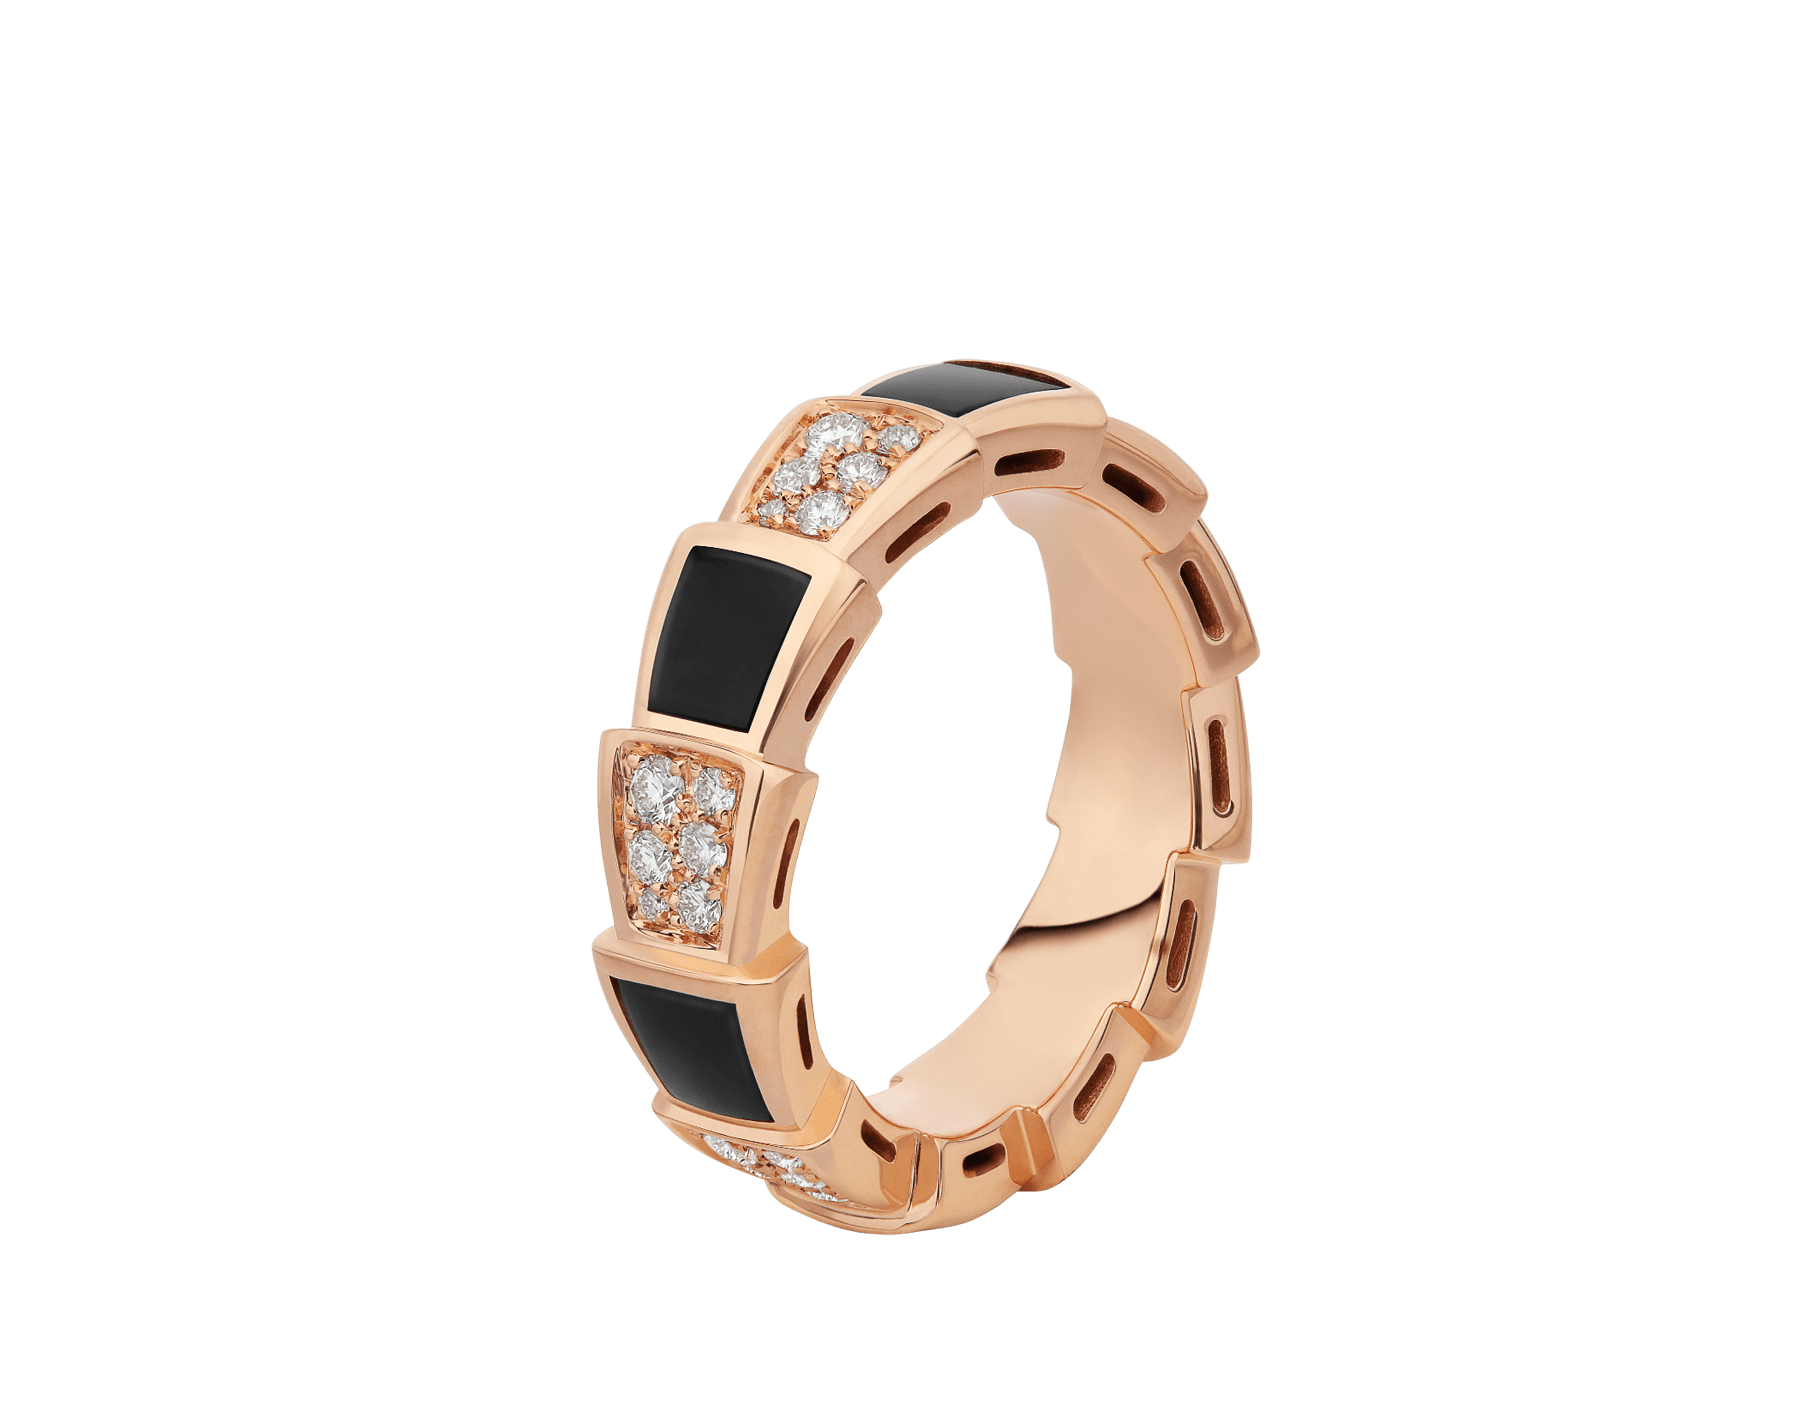 Serpenti Viper 18 kt rose gold ring set with onyx elements and pavé diamonds (0.34 ct) AN858711 image 1